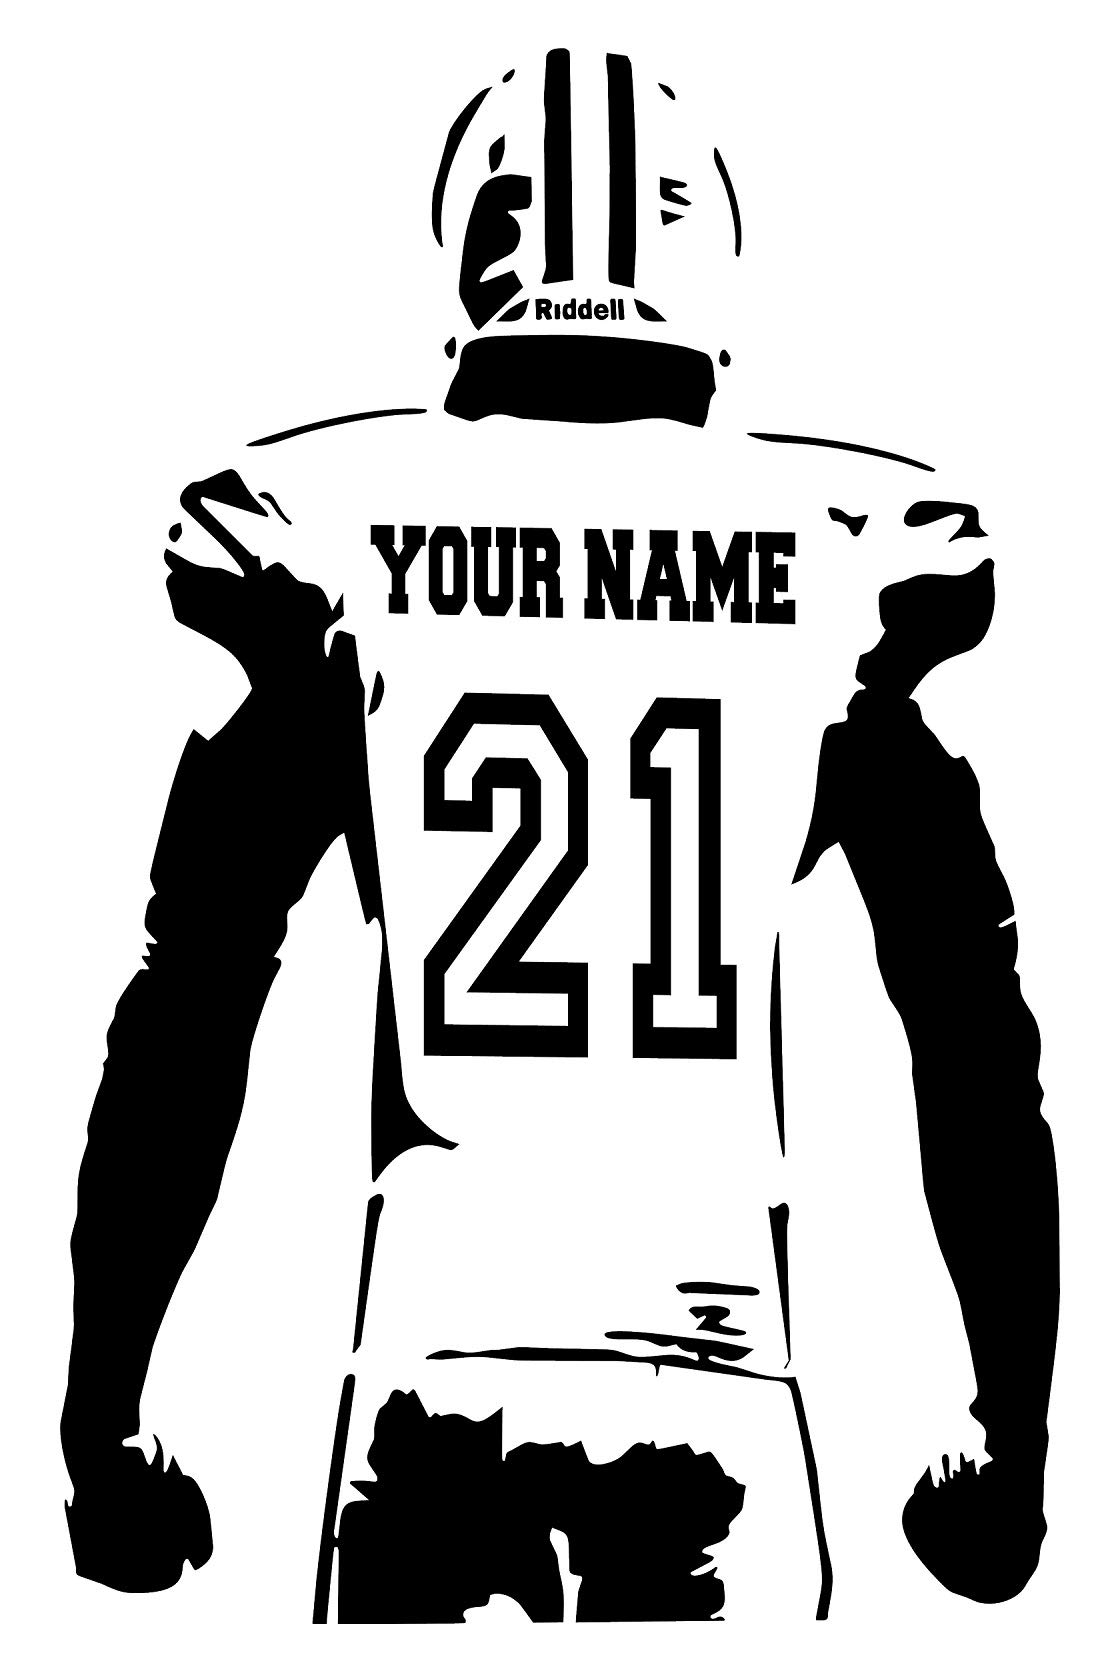 Personalized Custom Football Wall Decal - Choose Your Name & Numbers Custom Player Jerseys Vinyl Decal Sticker Decor Kids Bedroom (29'' W x 46'' T)